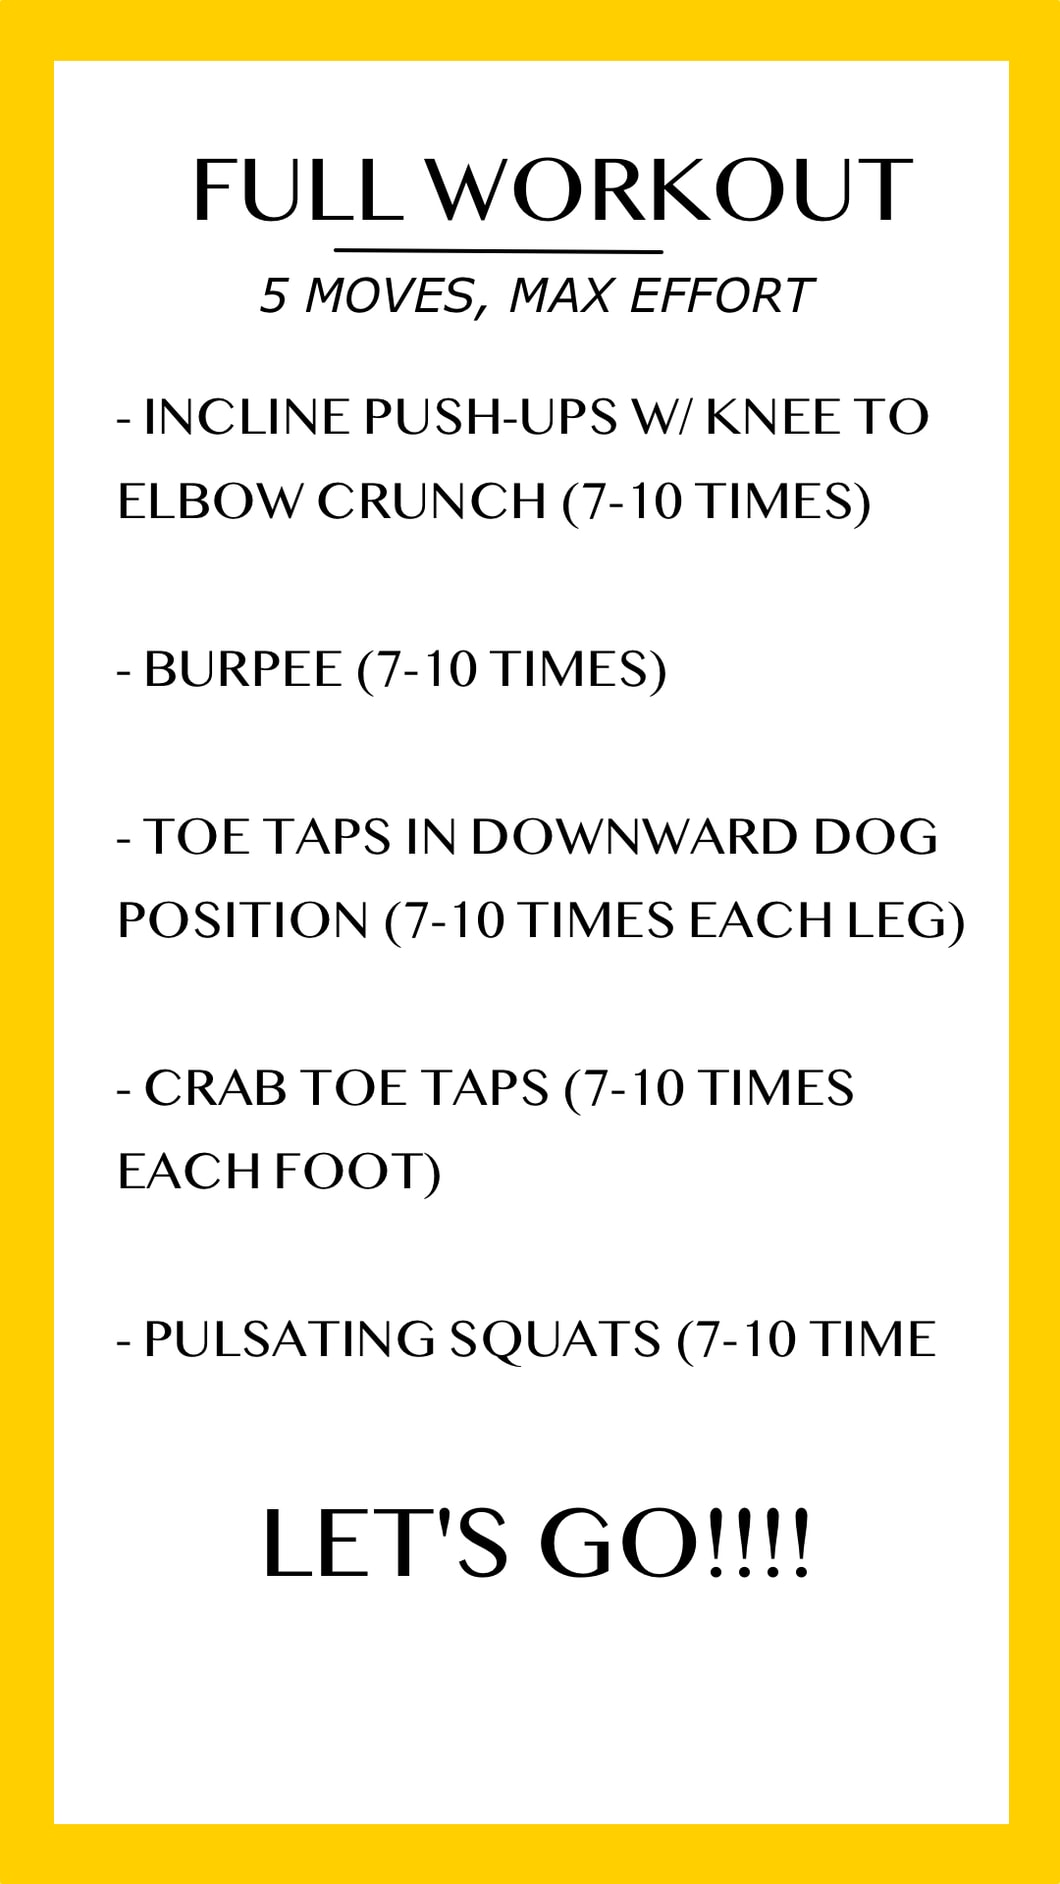 Exercise HIIT Workouts layout